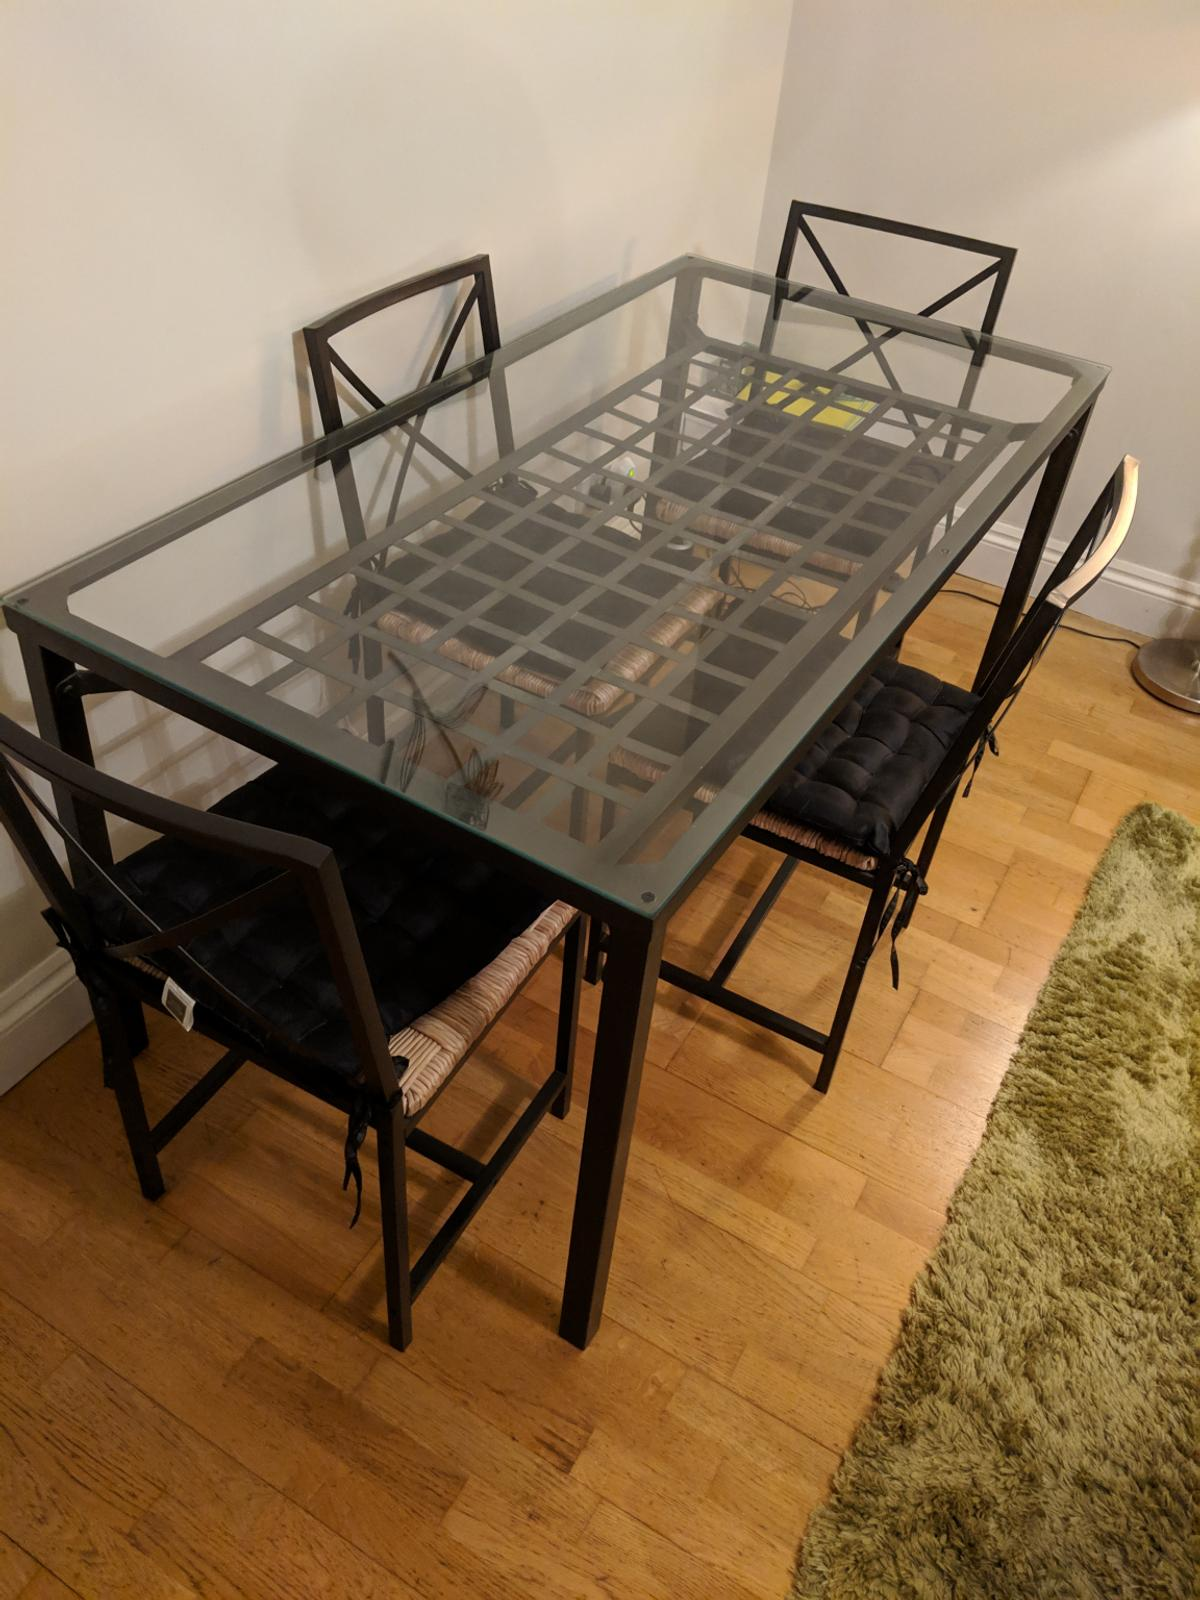 Surprising Ikea Granas Glass Dining Table With 4 Chairs Beutiful Home Inspiration Aditmahrainfo